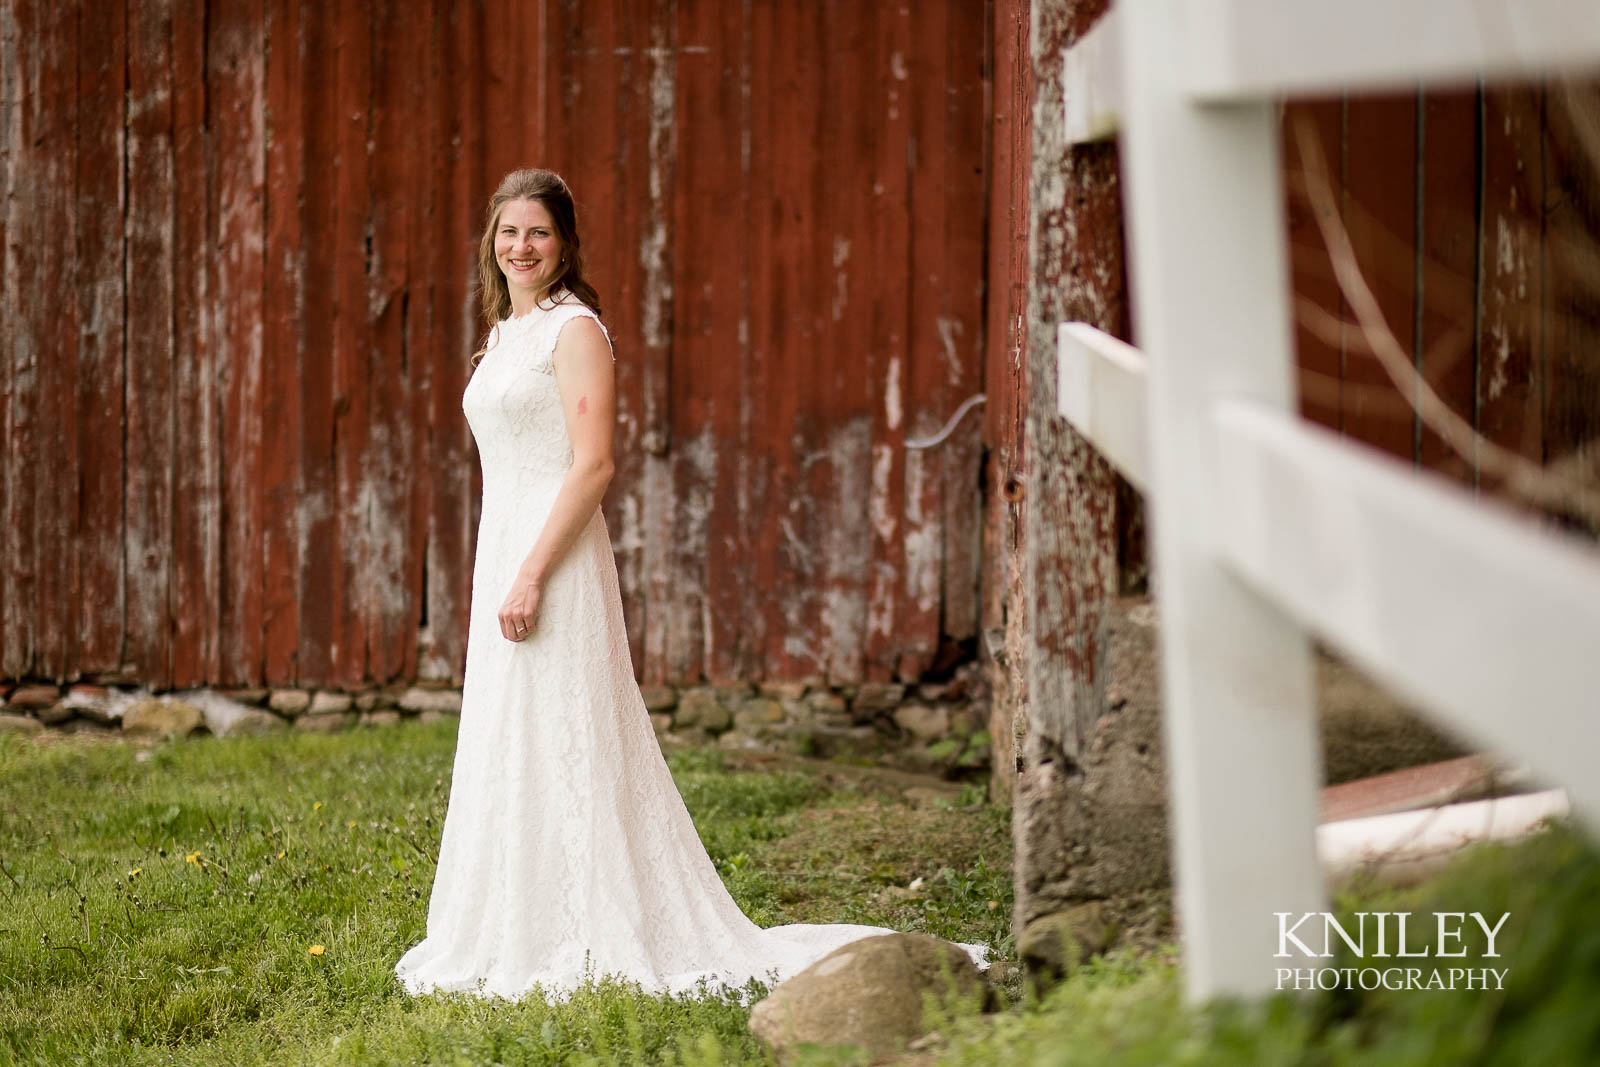 10-Western-New-York-farm-wedding-Kniley-Photography.jpg